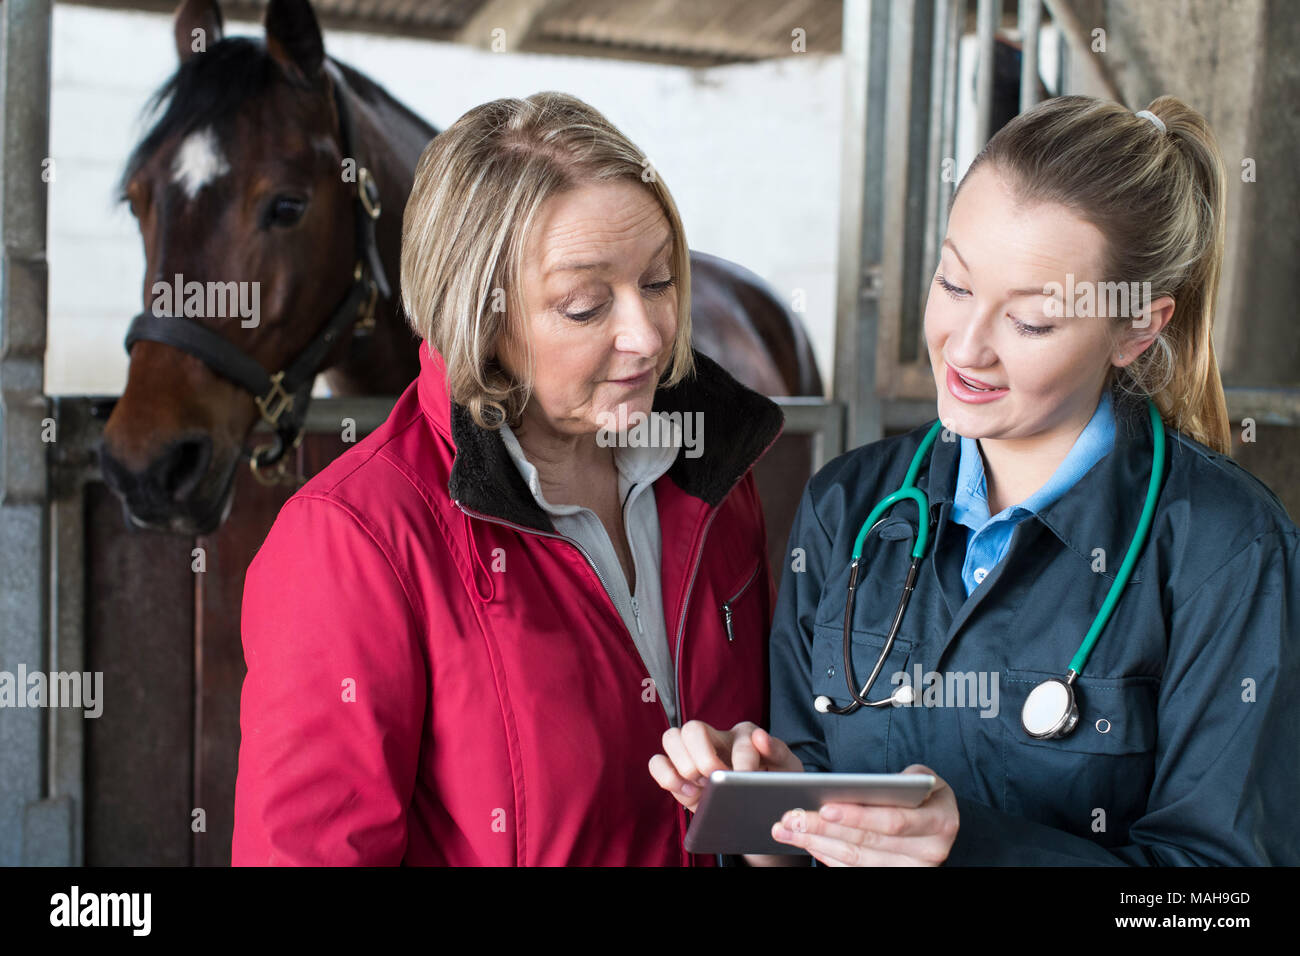 Female Vet Examining Horse In Stables Showing Owner Digital Tablet - Stock Image